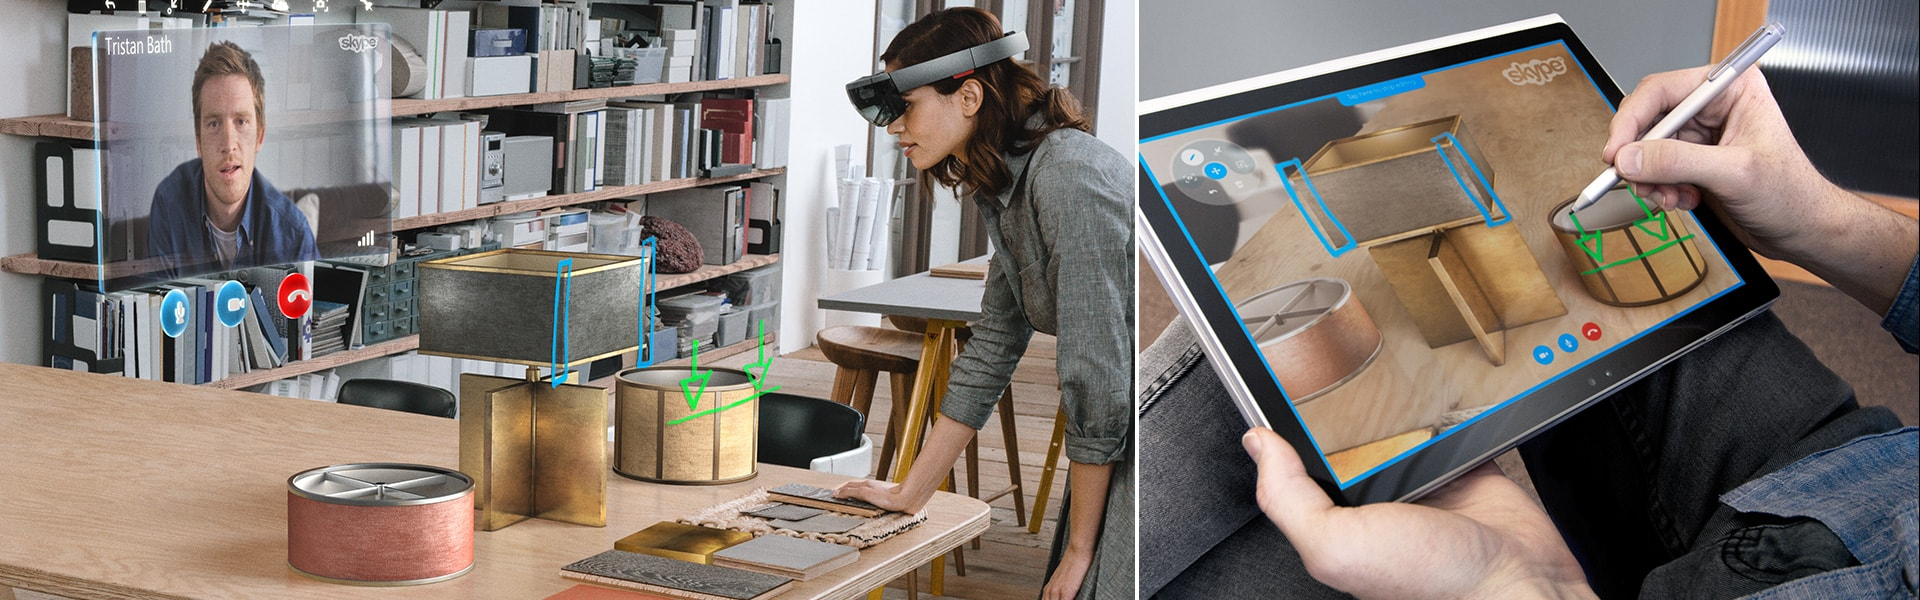 A woman wearing a HoloLens Skypes with a friend. She can see his screen sketches as holograms blended with real objects in her environment.